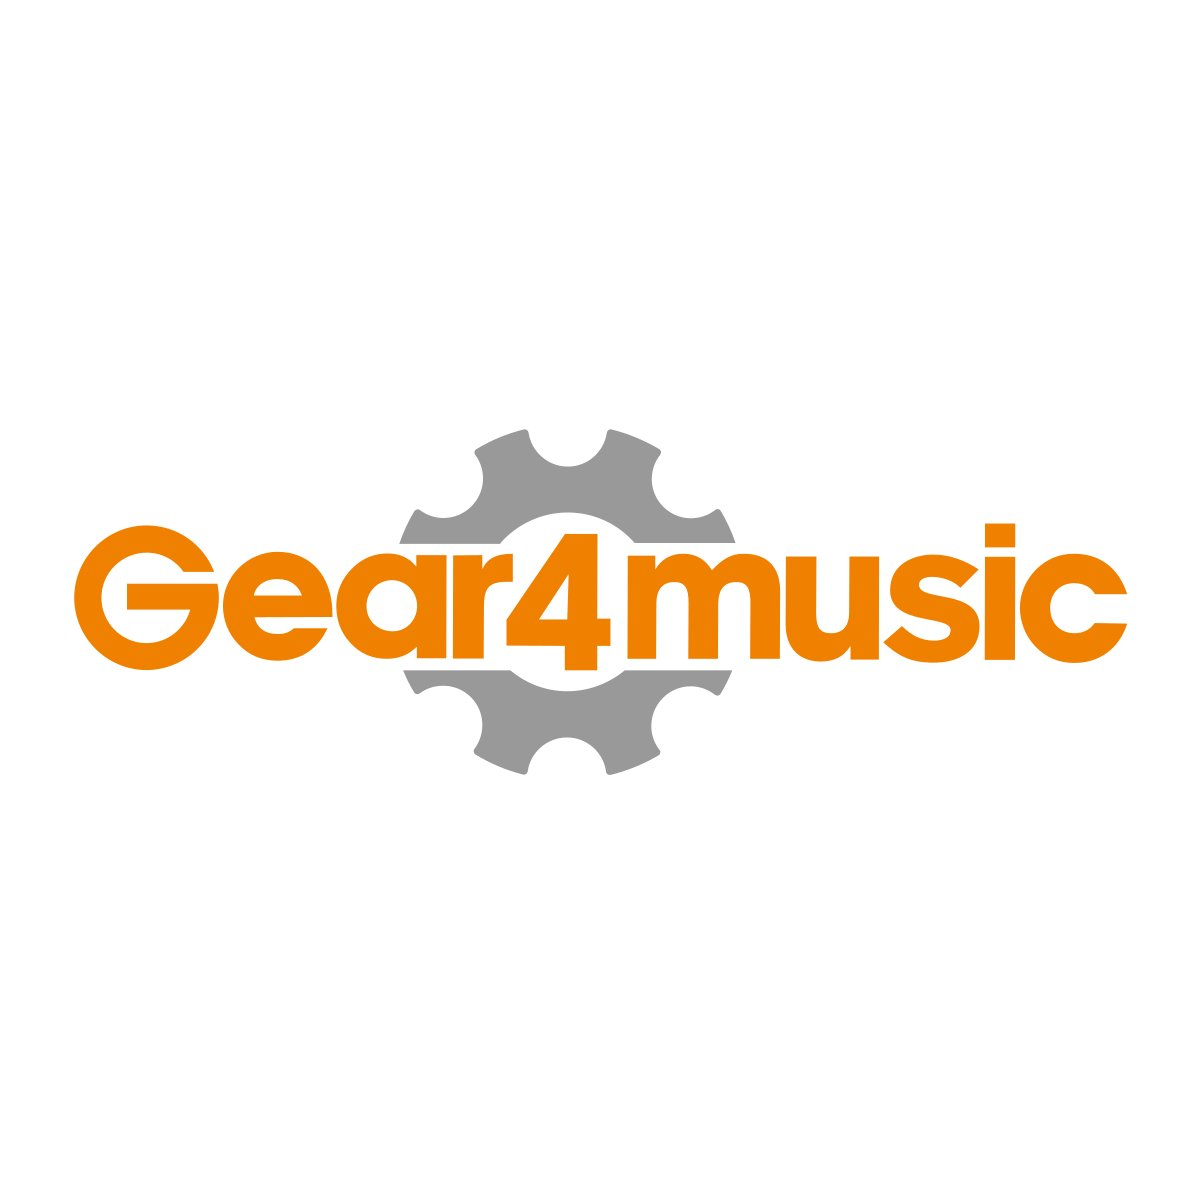 behringer xenyx x1204usb 8 channel analog mixer at gear4music. Black Bedroom Furniture Sets. Home Design Ideas